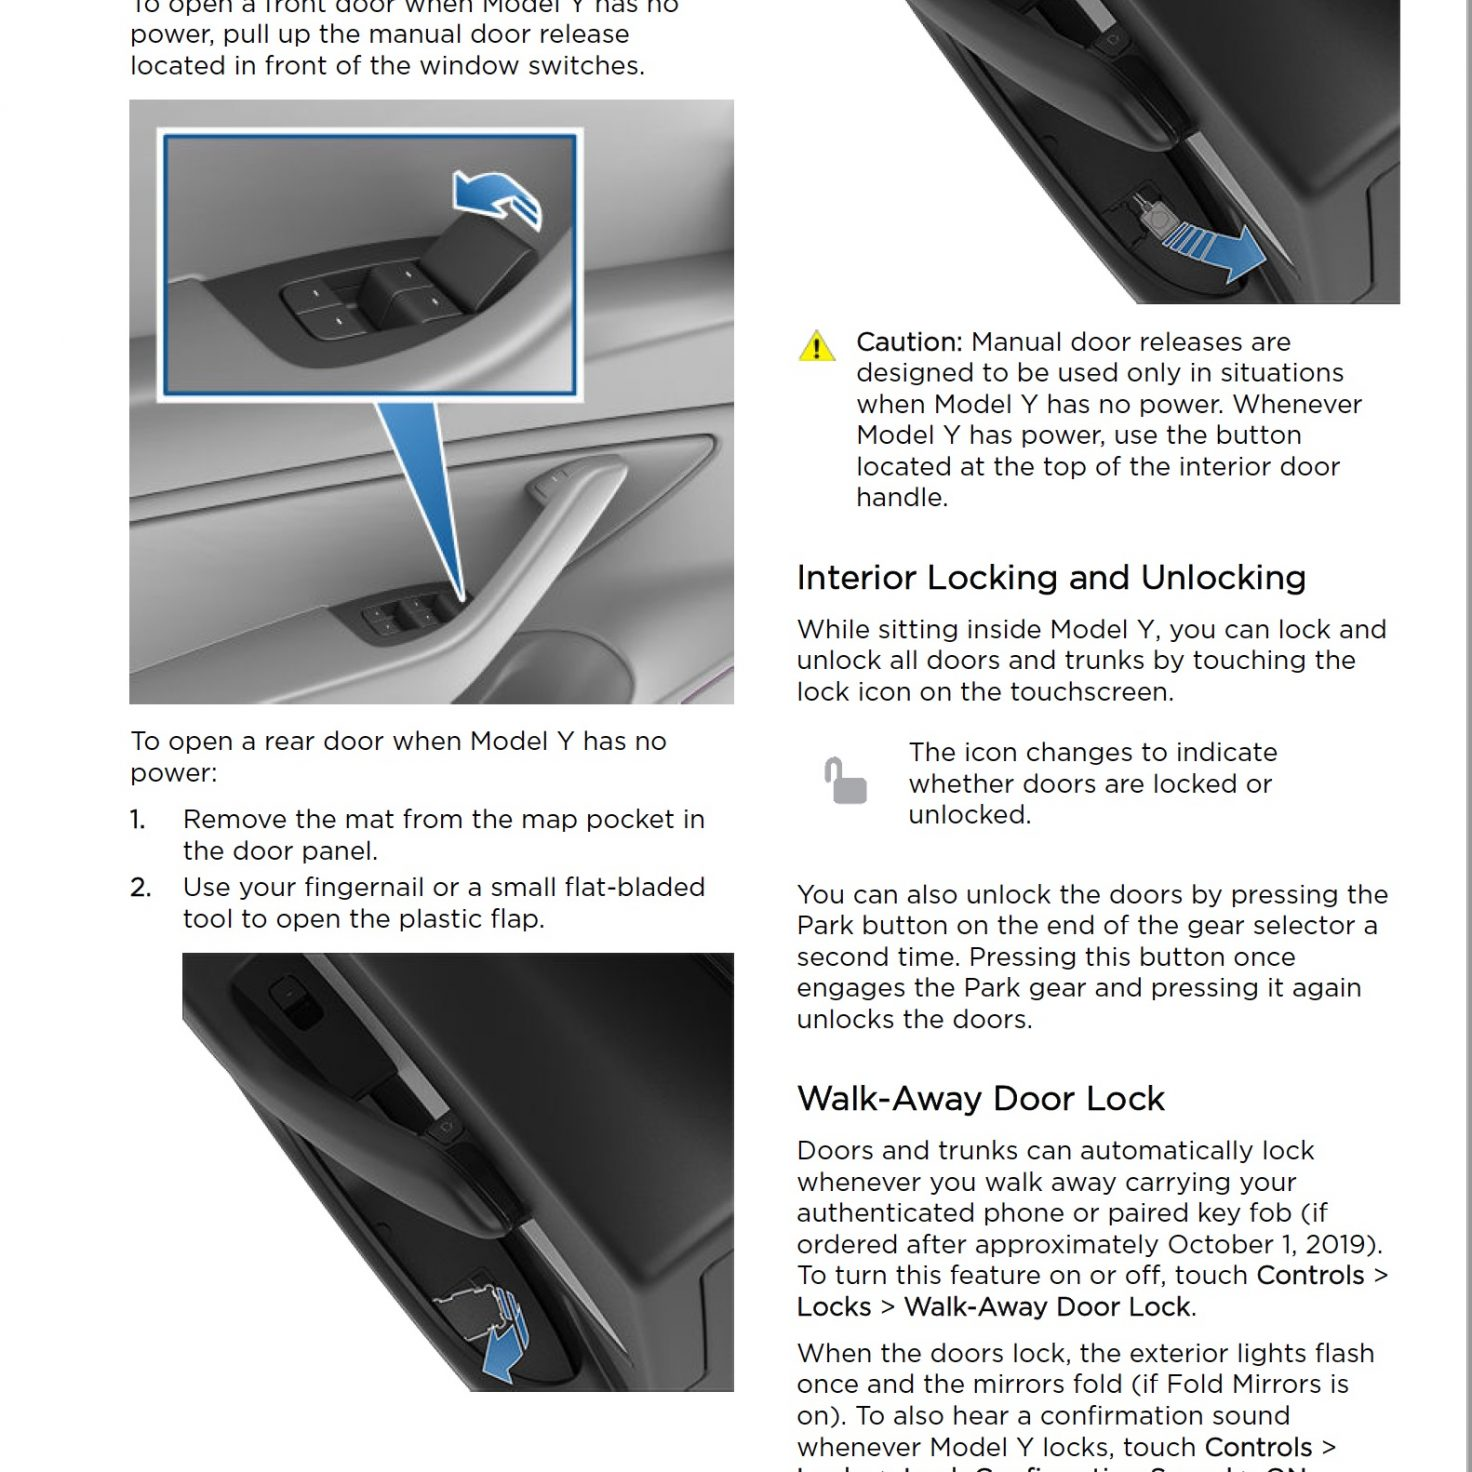 Tesla Model Y emergency door release